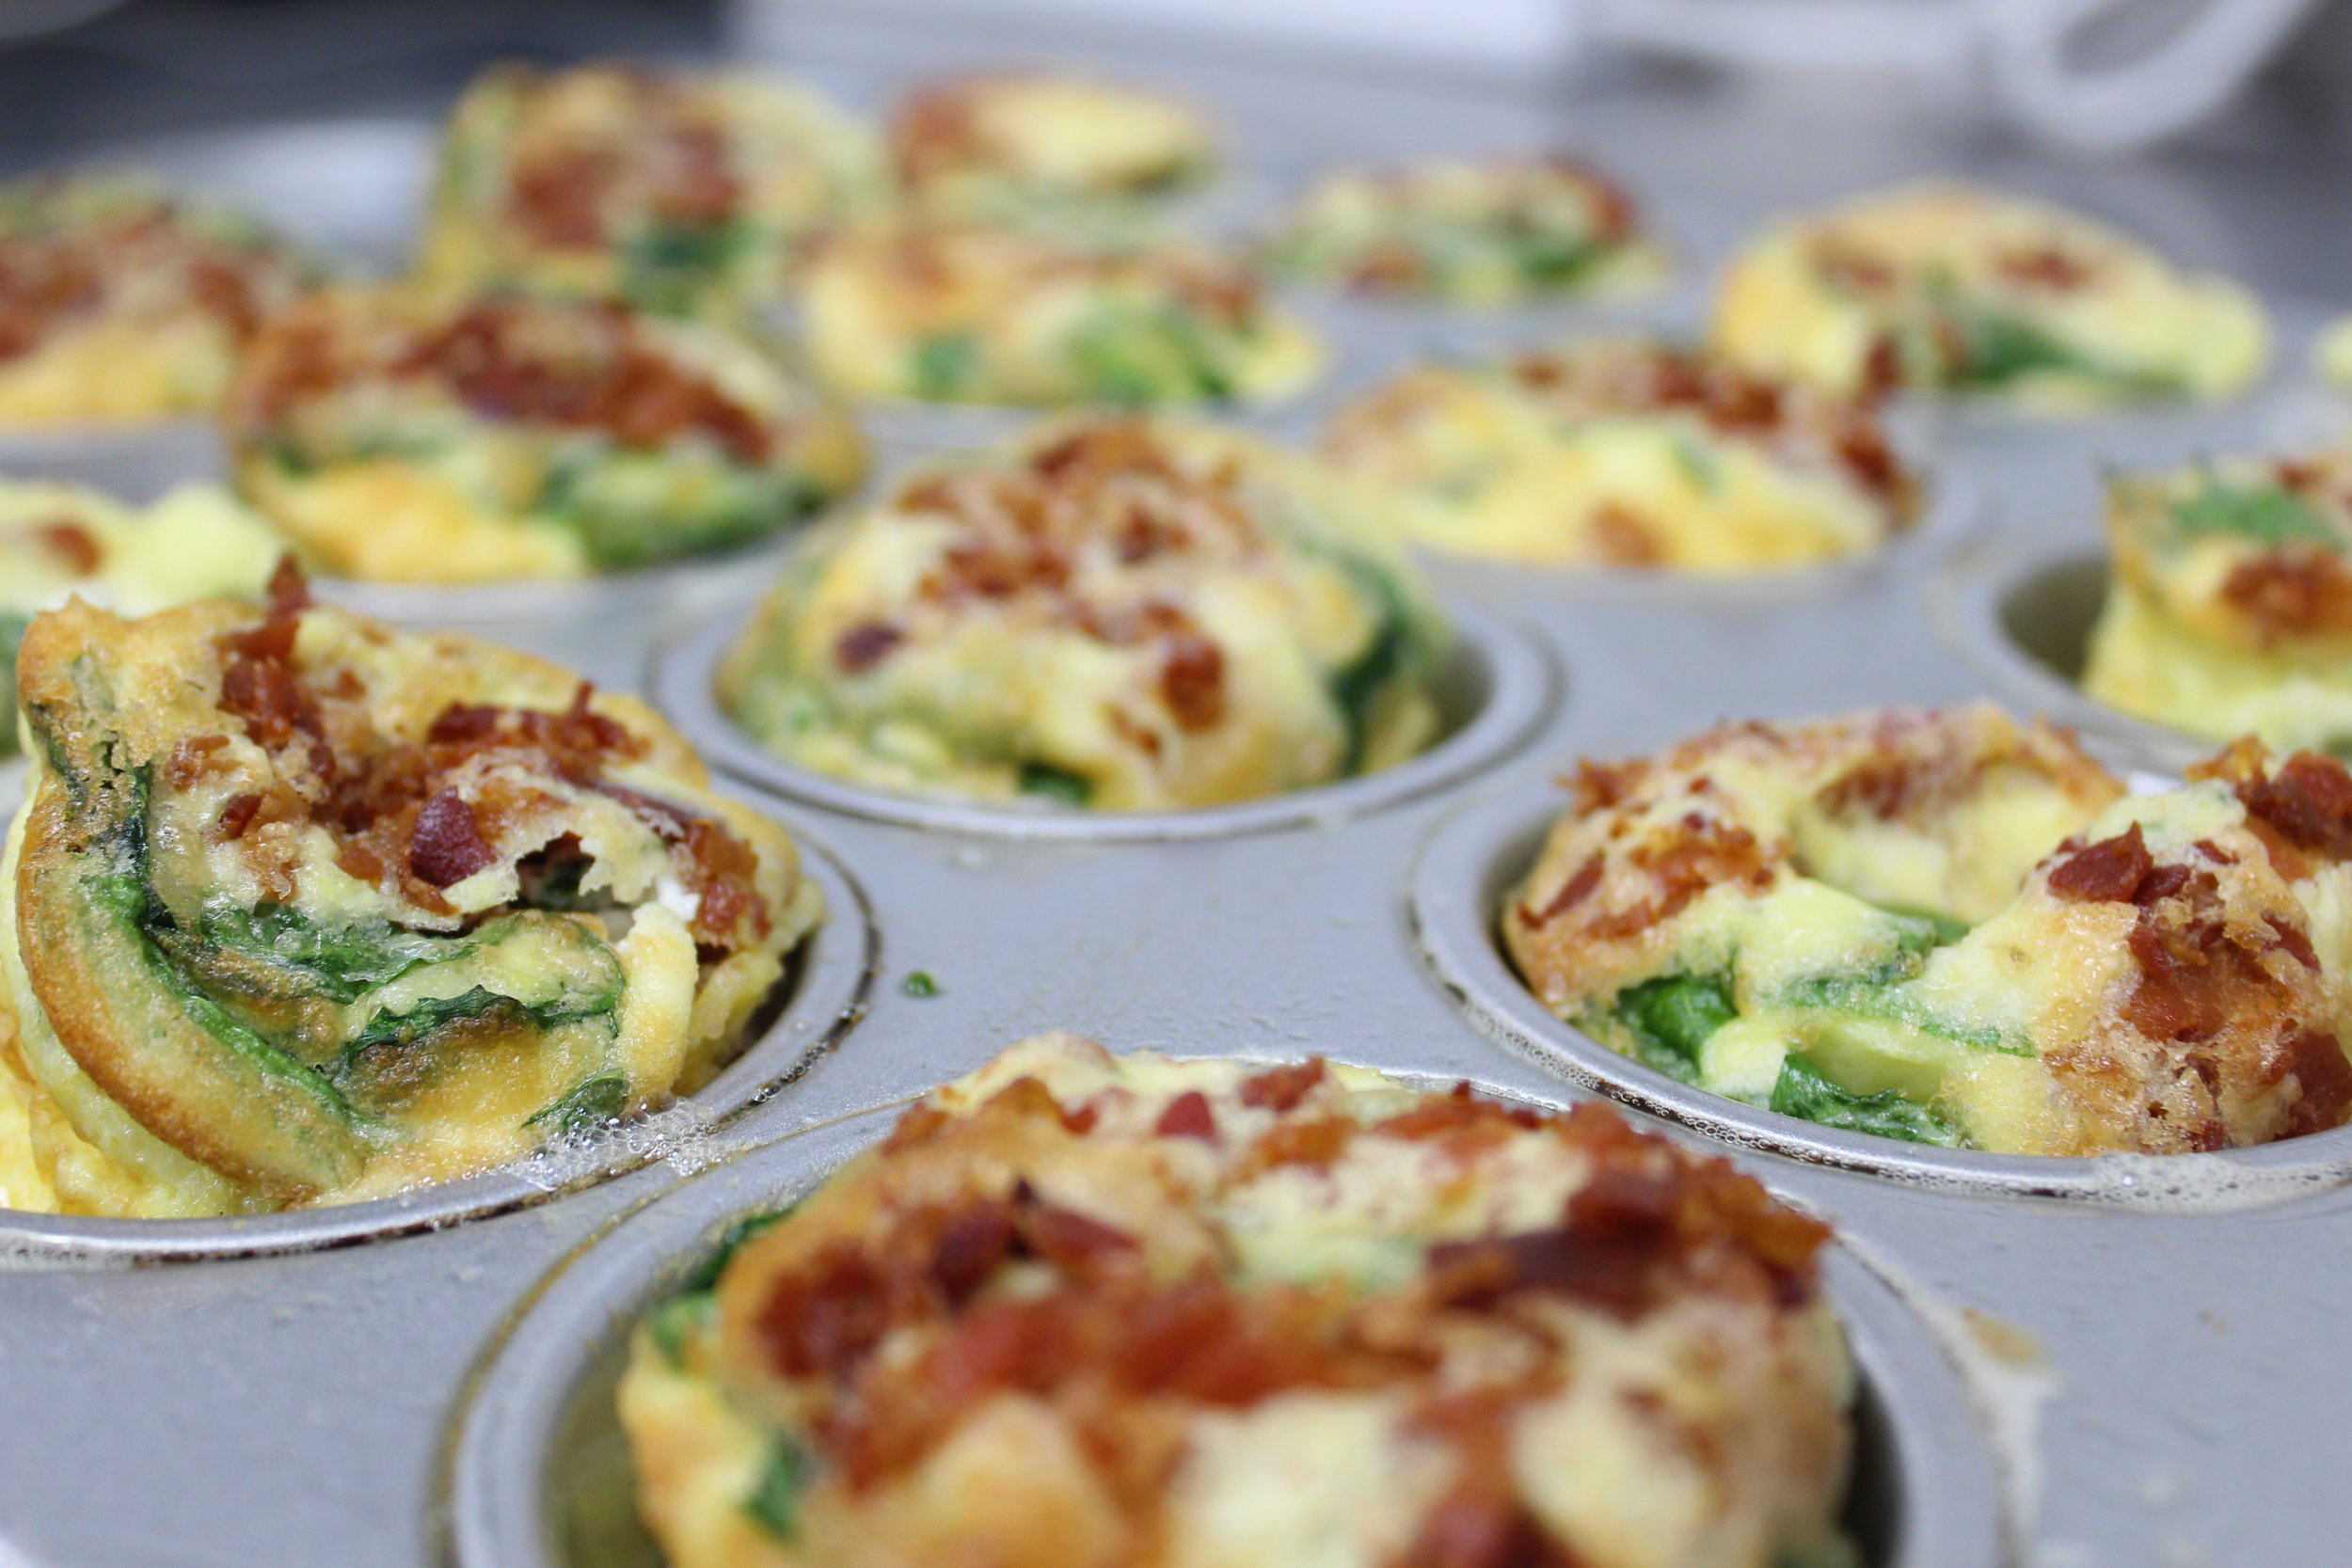 catering-corporate-lunch-startup-tech-silicon-prairie-kansascity-eggs.JPG